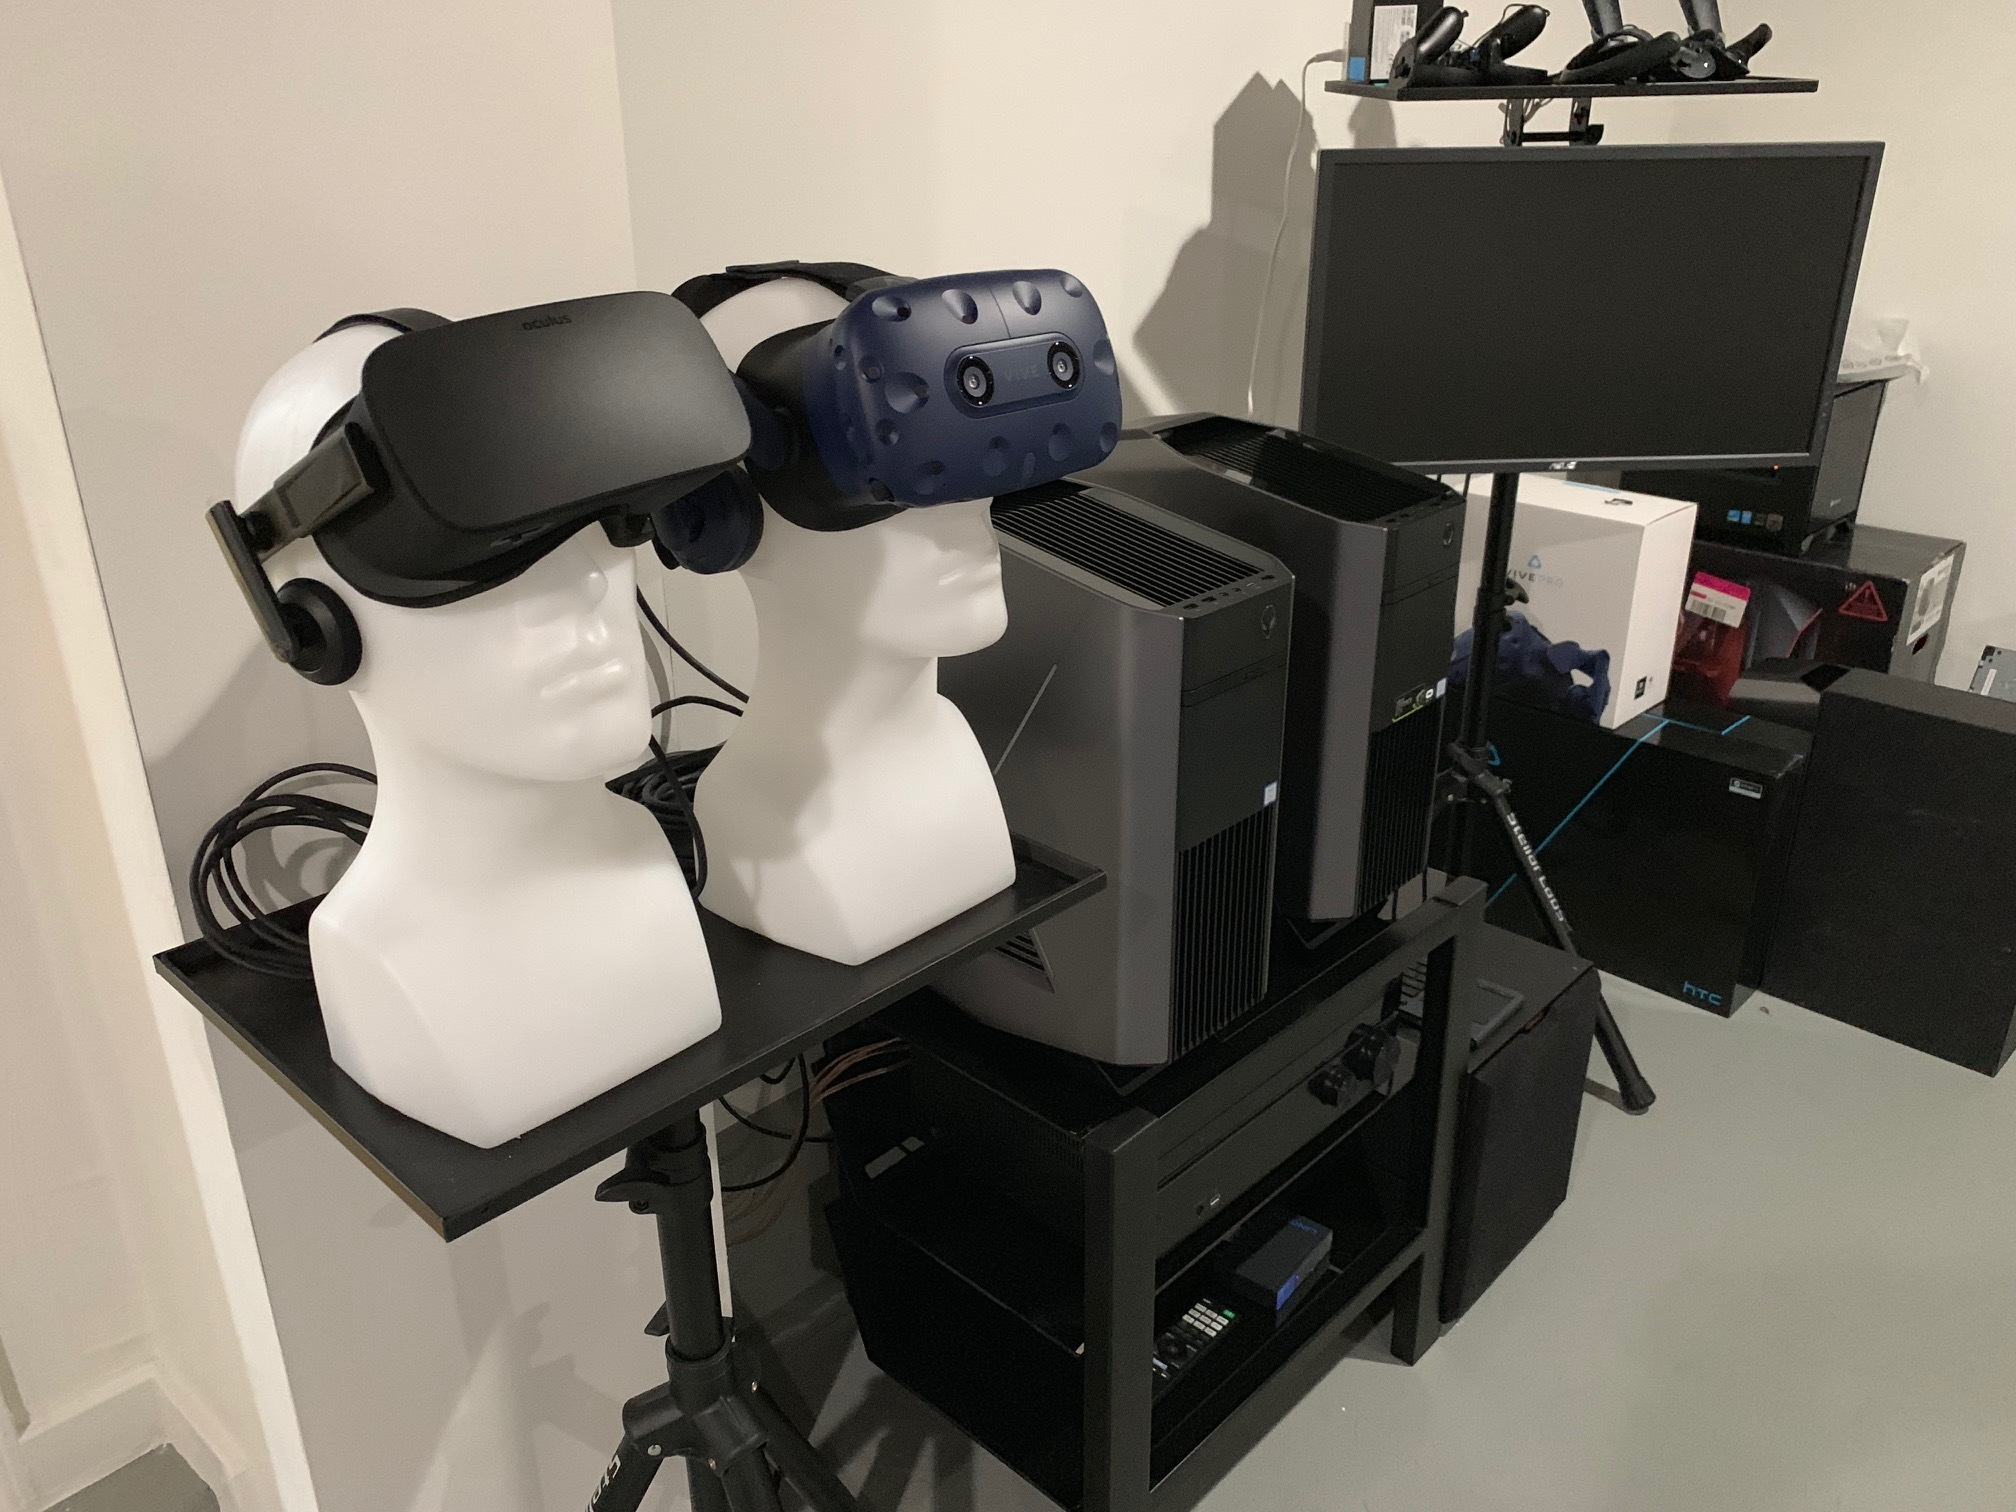 2MD VR Football :: 2MD VR Football: VR Platform Testing and